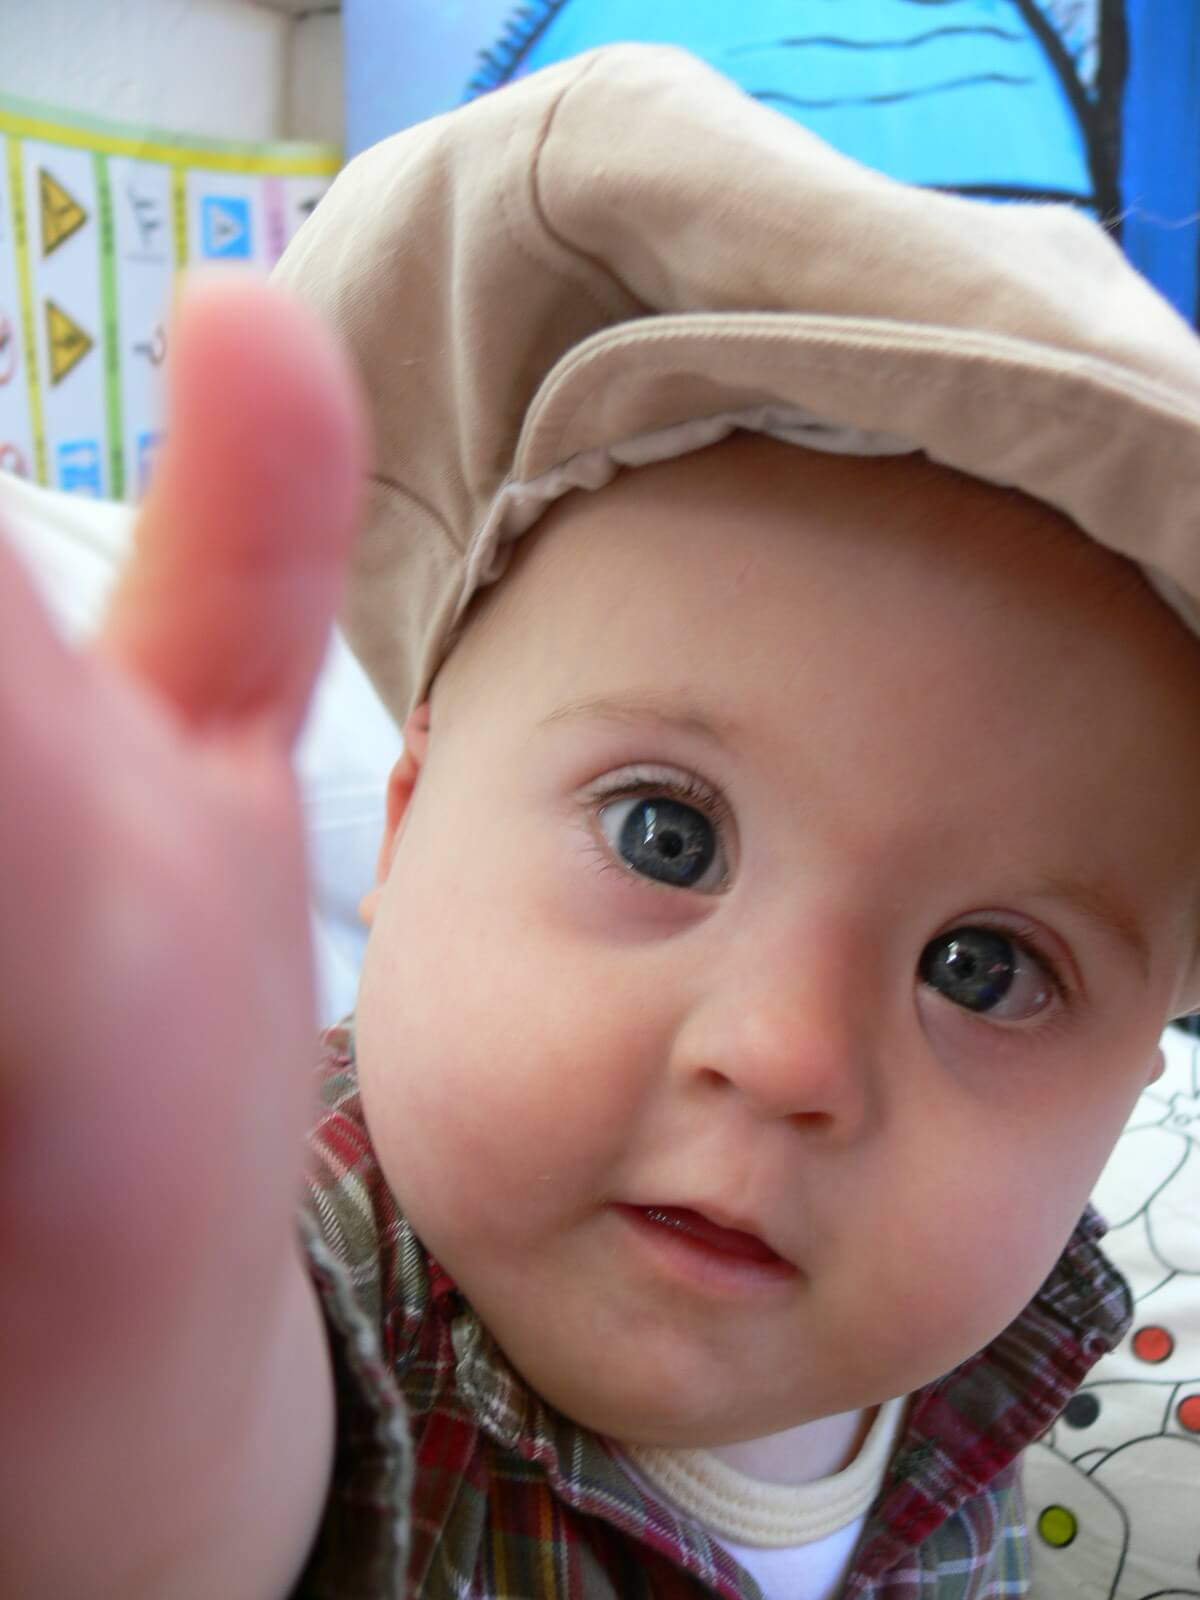 90% Normal: A Baby with Down syndrome - With a Little Moxie